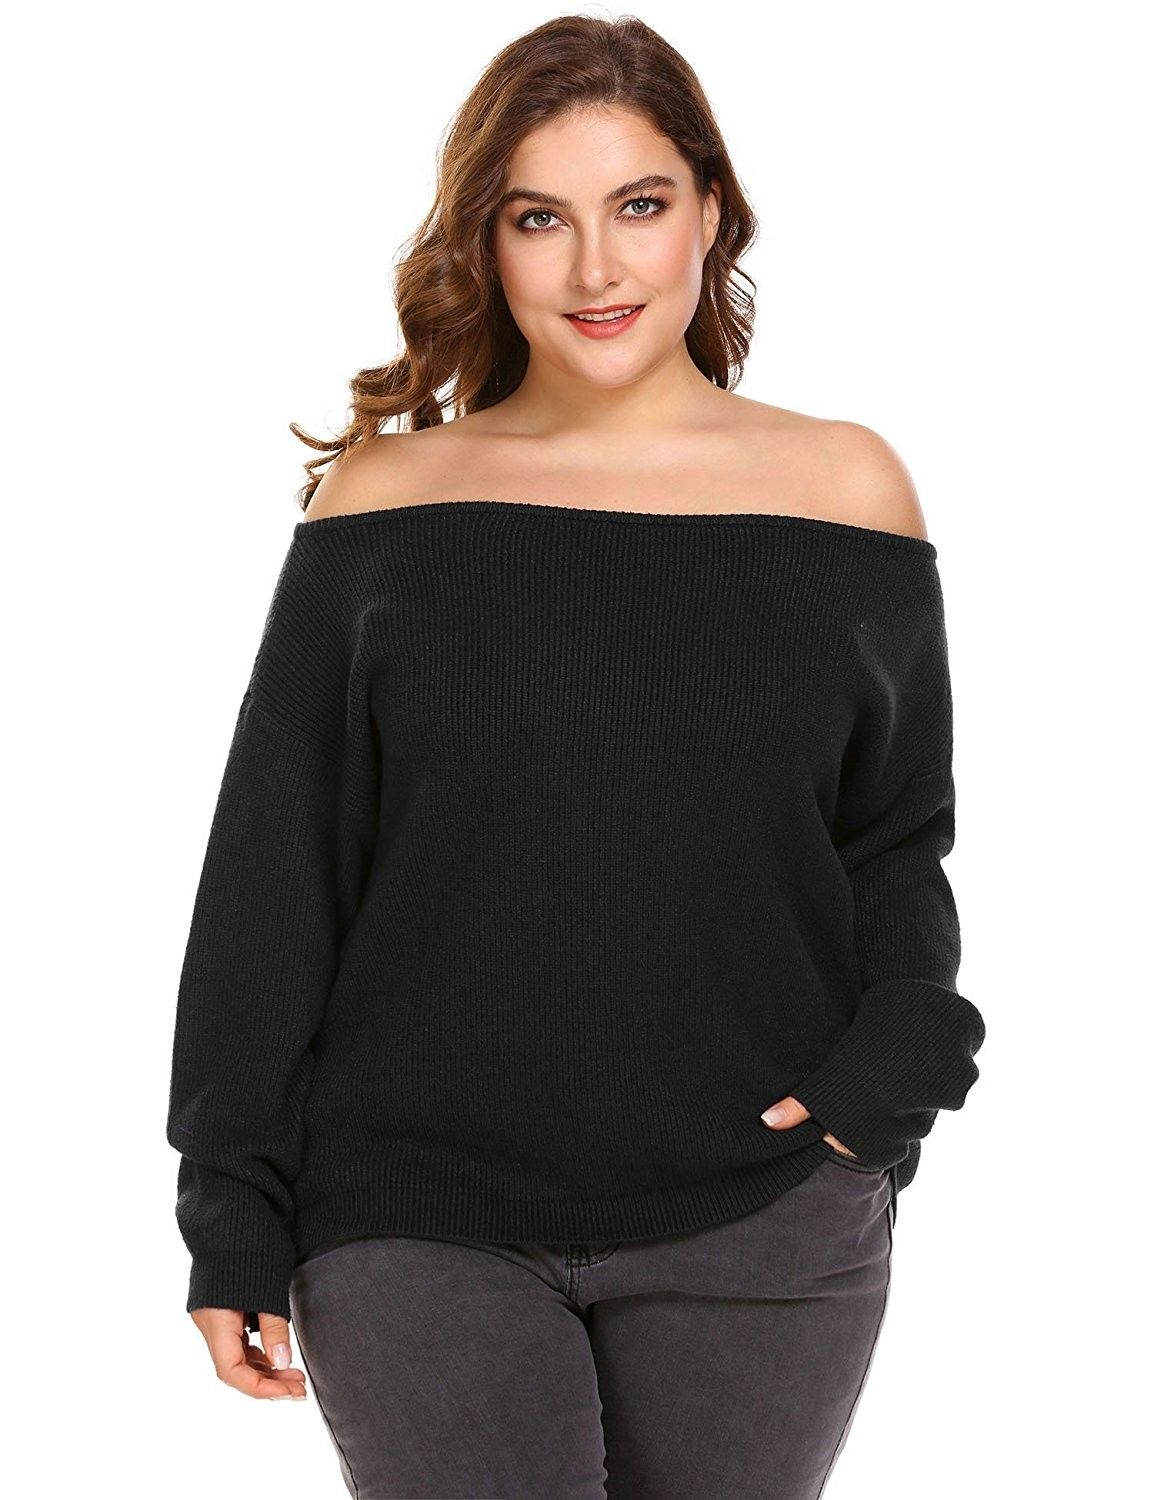 e59d844370d Womens Plus Size Sweater Cold Shoulder Tops Long Sleeve Loose Knit ...